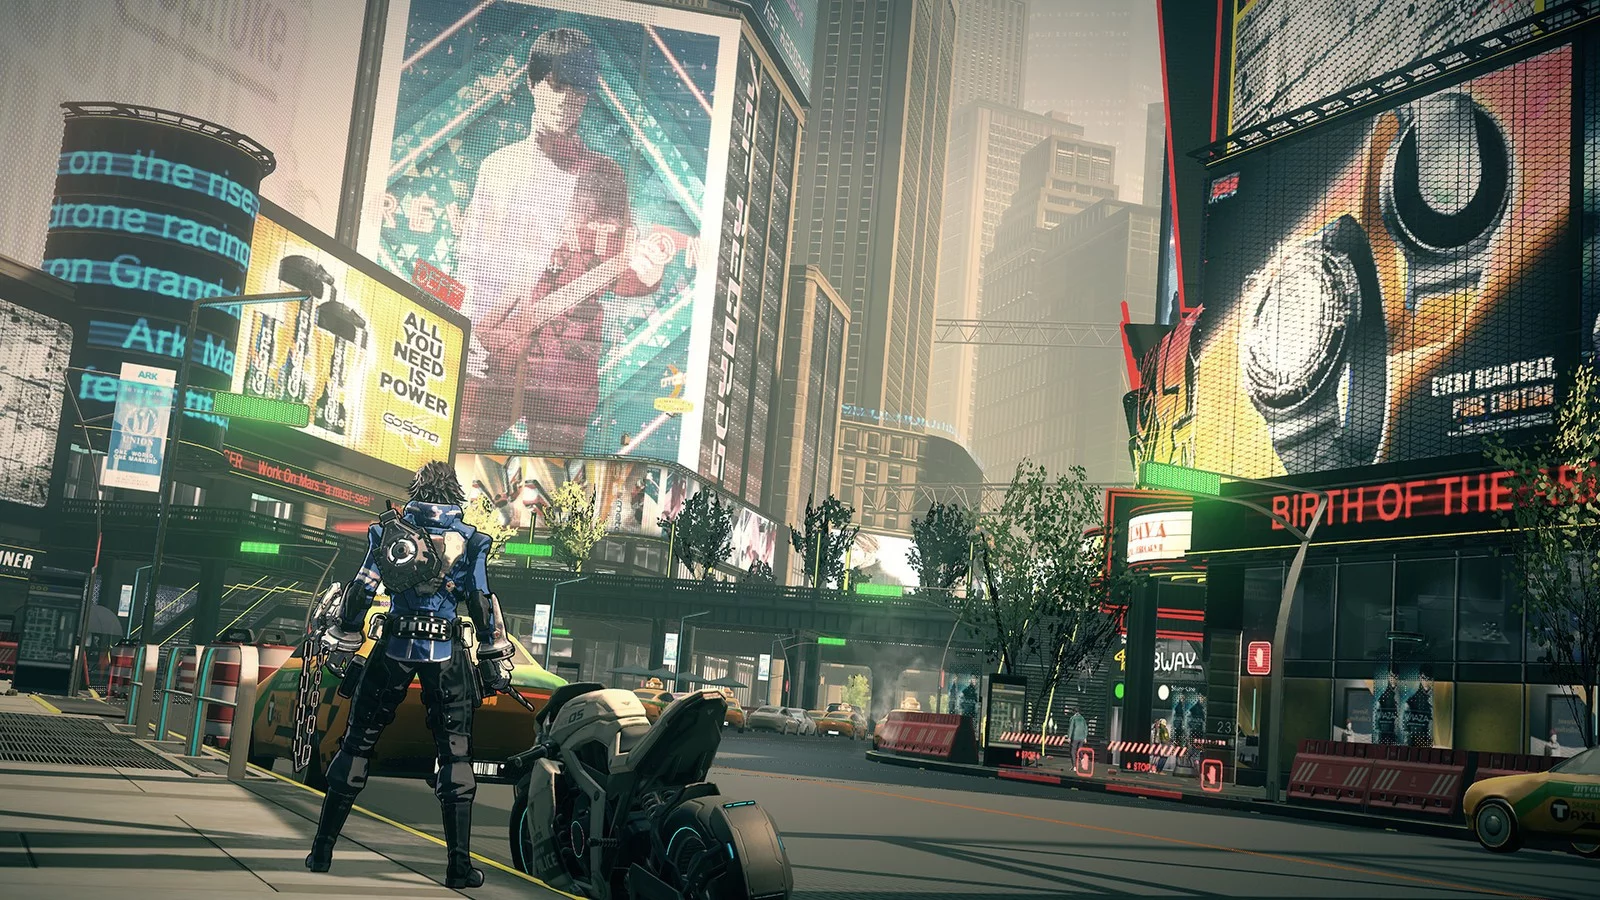 astral chain ark city 2